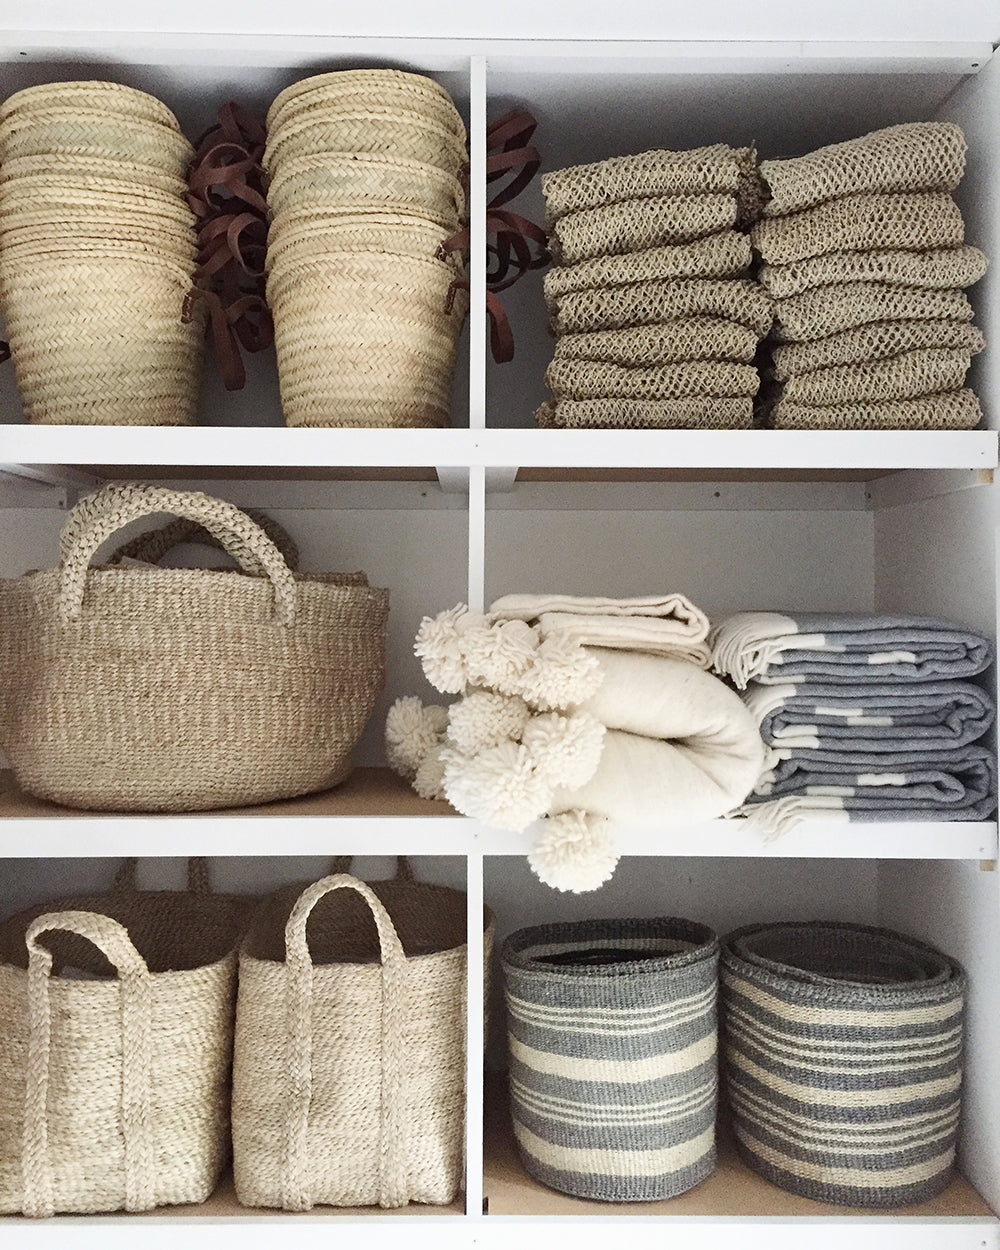 cupboard with jute baskets and throws